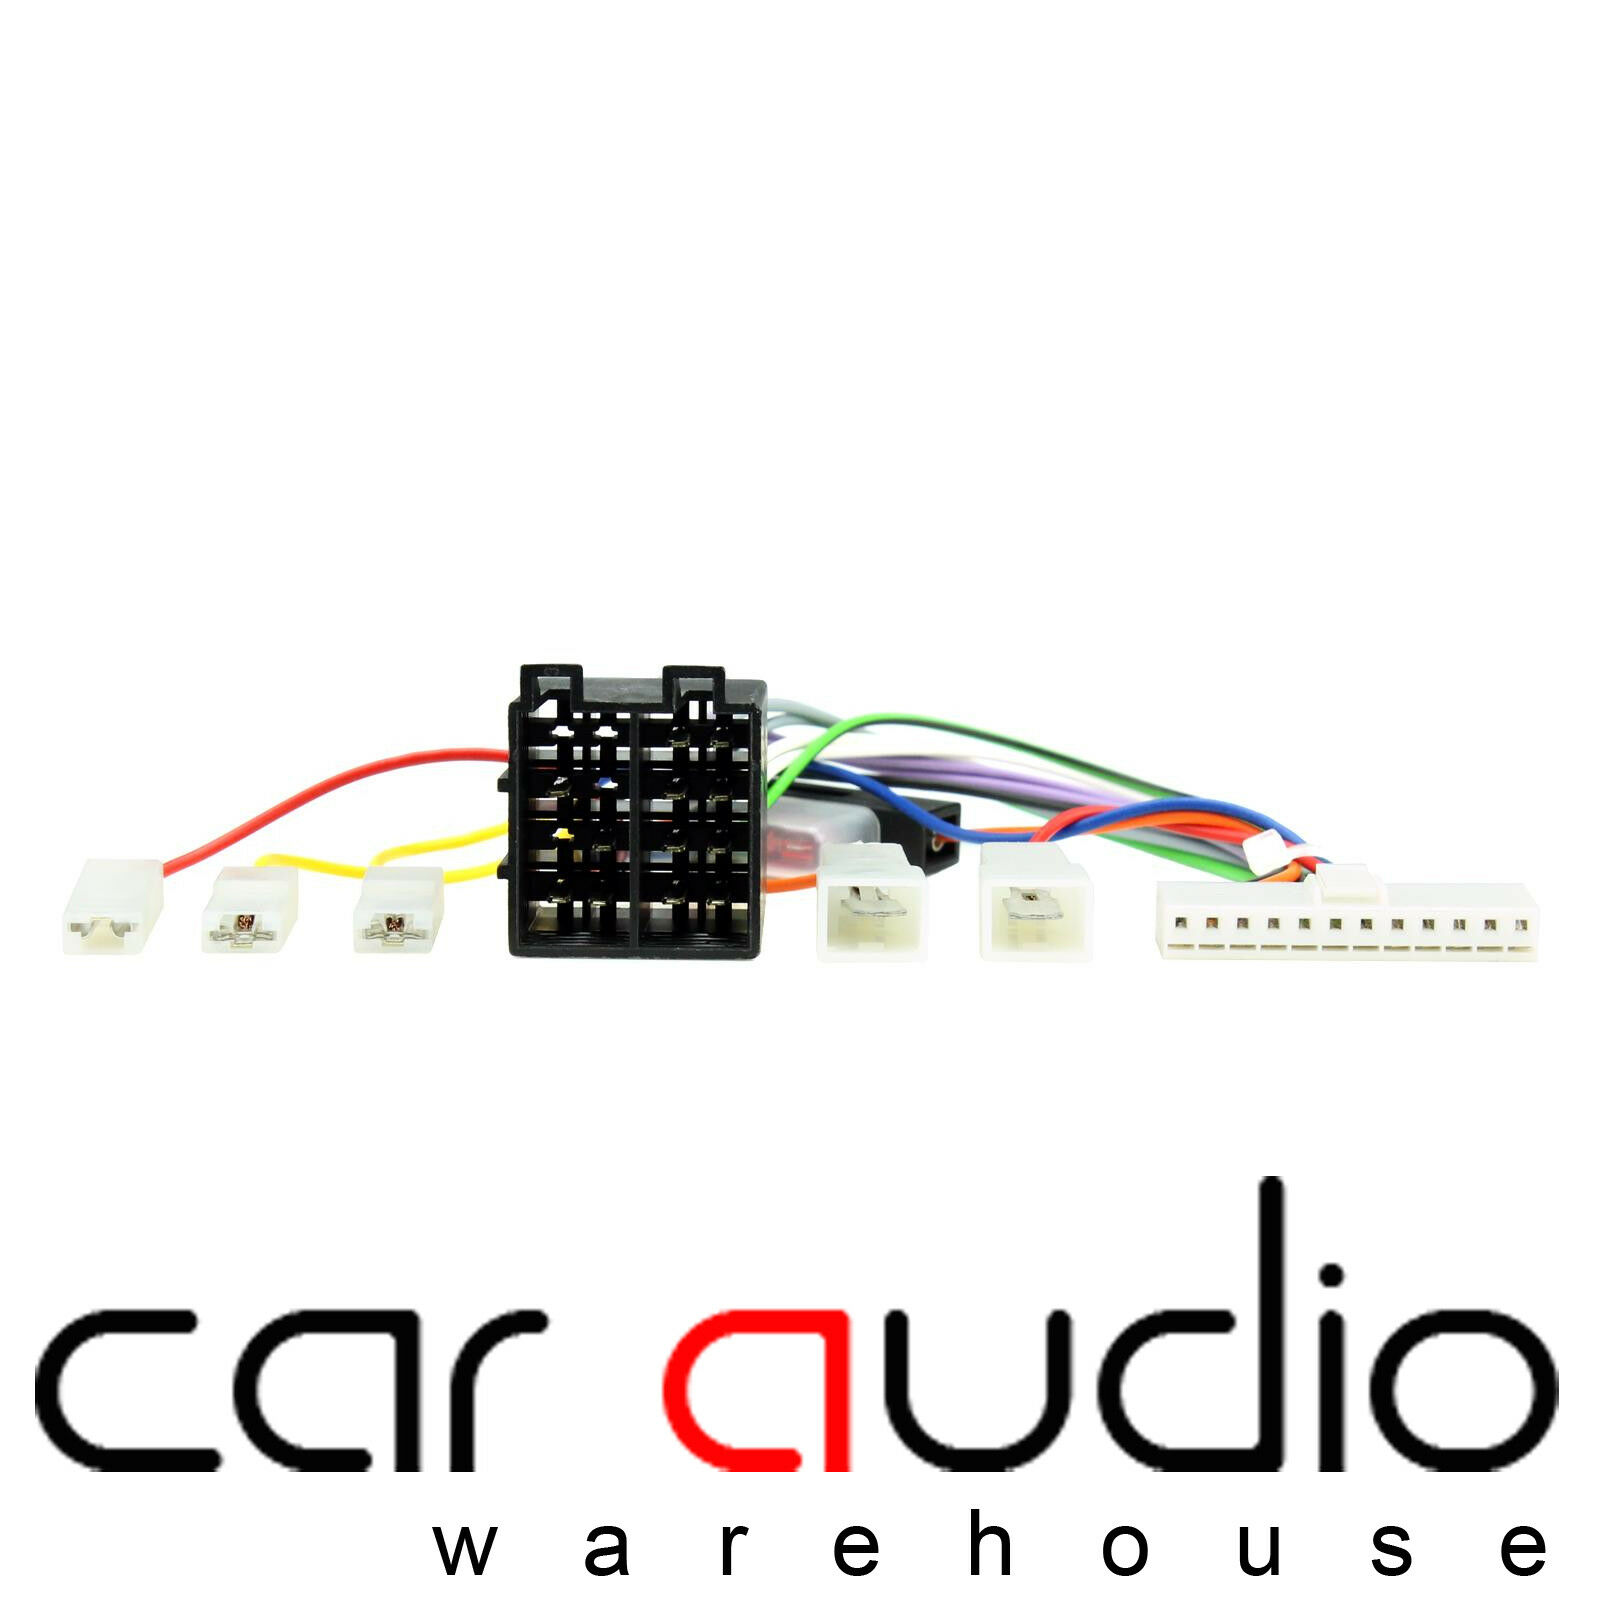 Pioneer 12 Pin Iso Head Unit Replacement Car Stereo Wiring Harness Clarion Radio 14 Ct21pn01 1 Of 1free Shipping